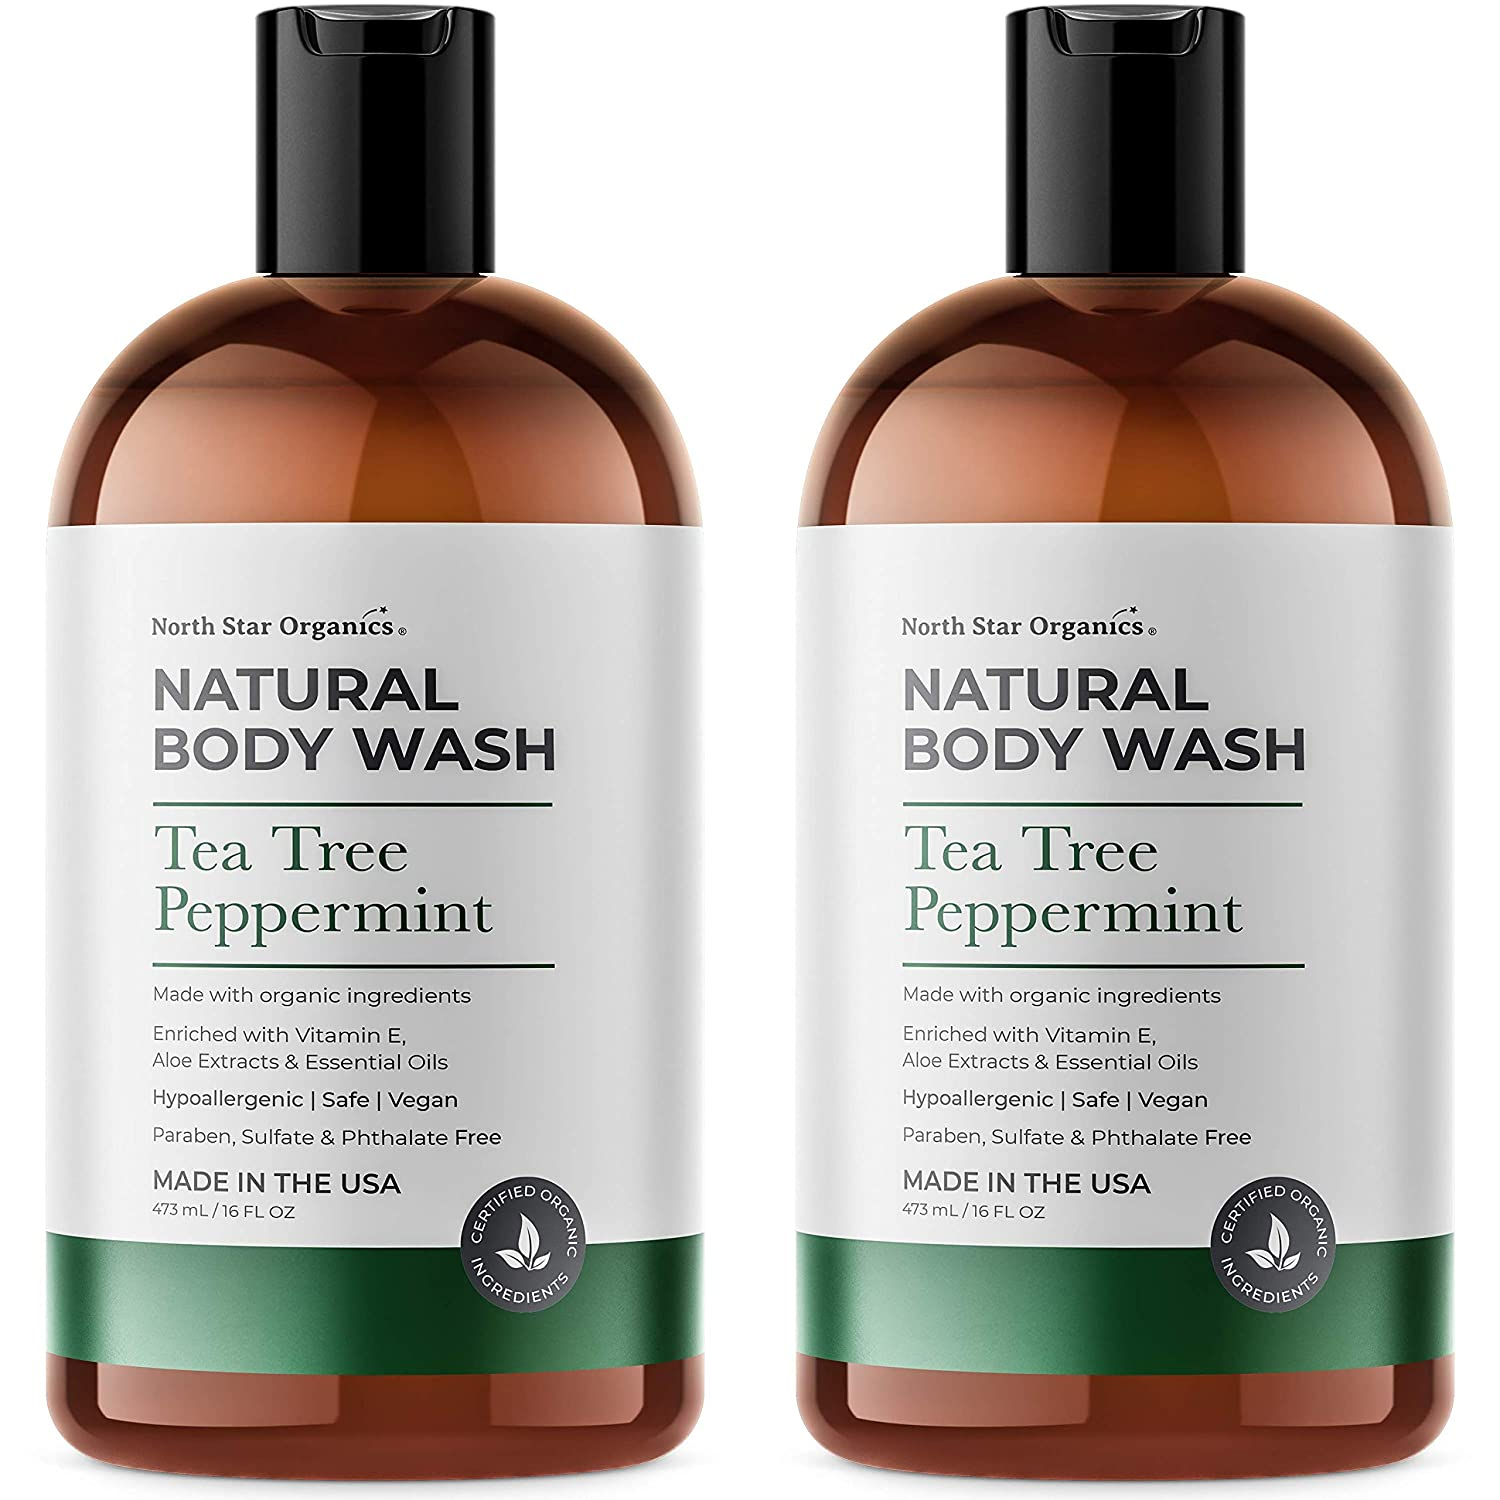 Organic Tea Tree Peppermint Shower Gel & Body Wash- Made in USA - 2 pack of 16oz - All Natural, Hypoallergenic, Vegan, Paraben, Sulfate & Phthalate Free